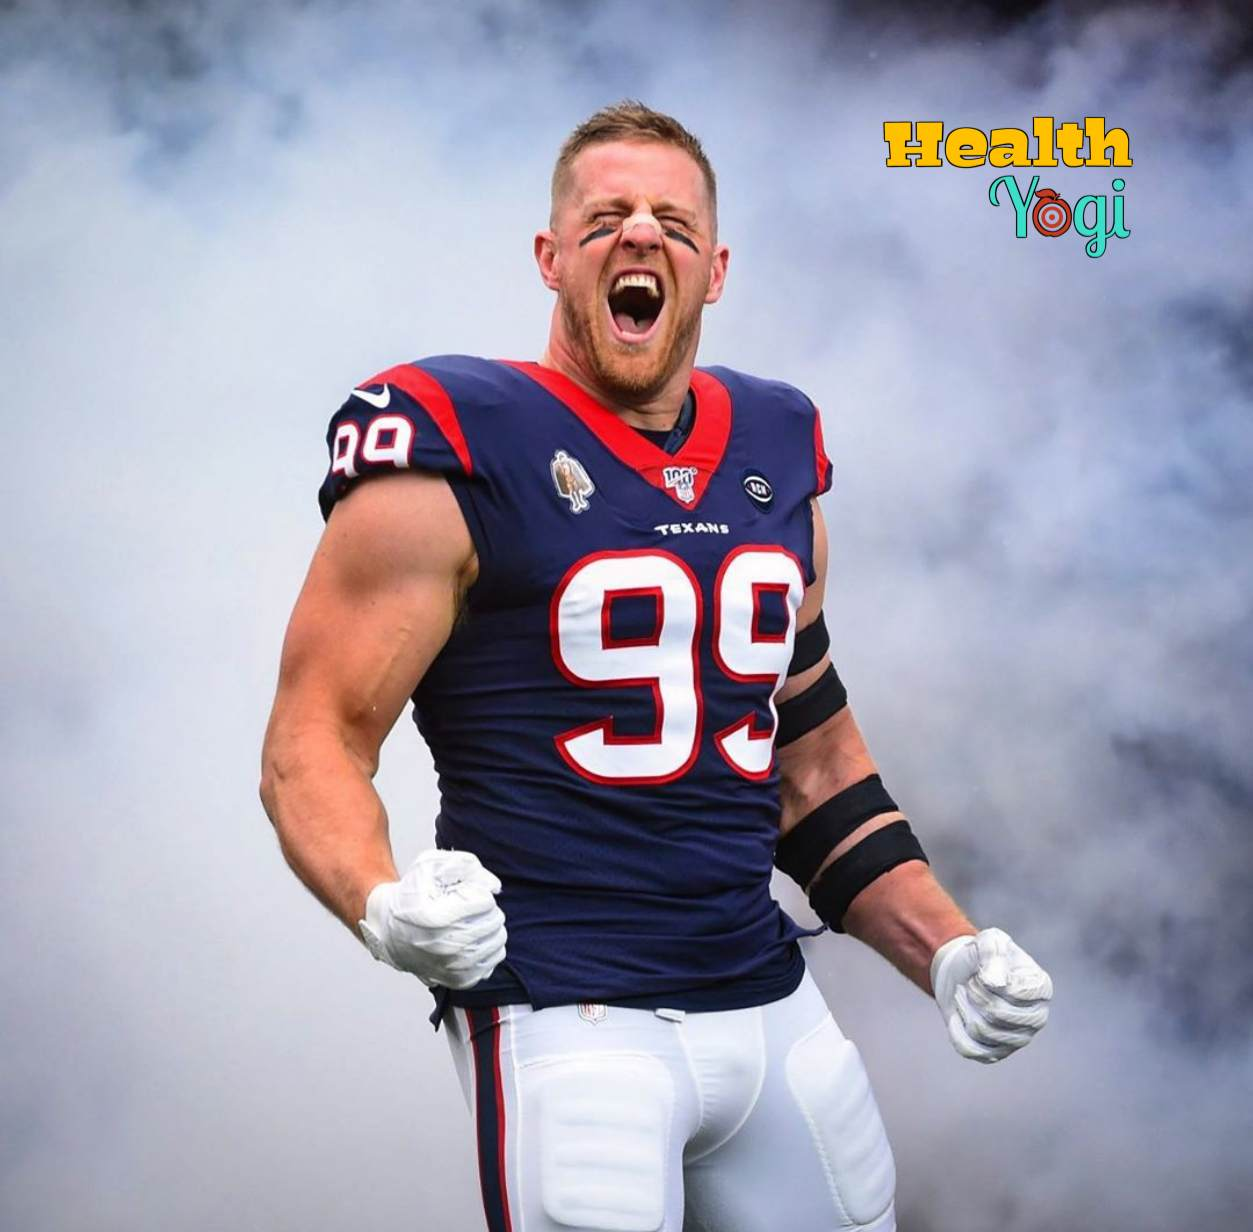 JJ Watt Diet Plan and Workout Routine